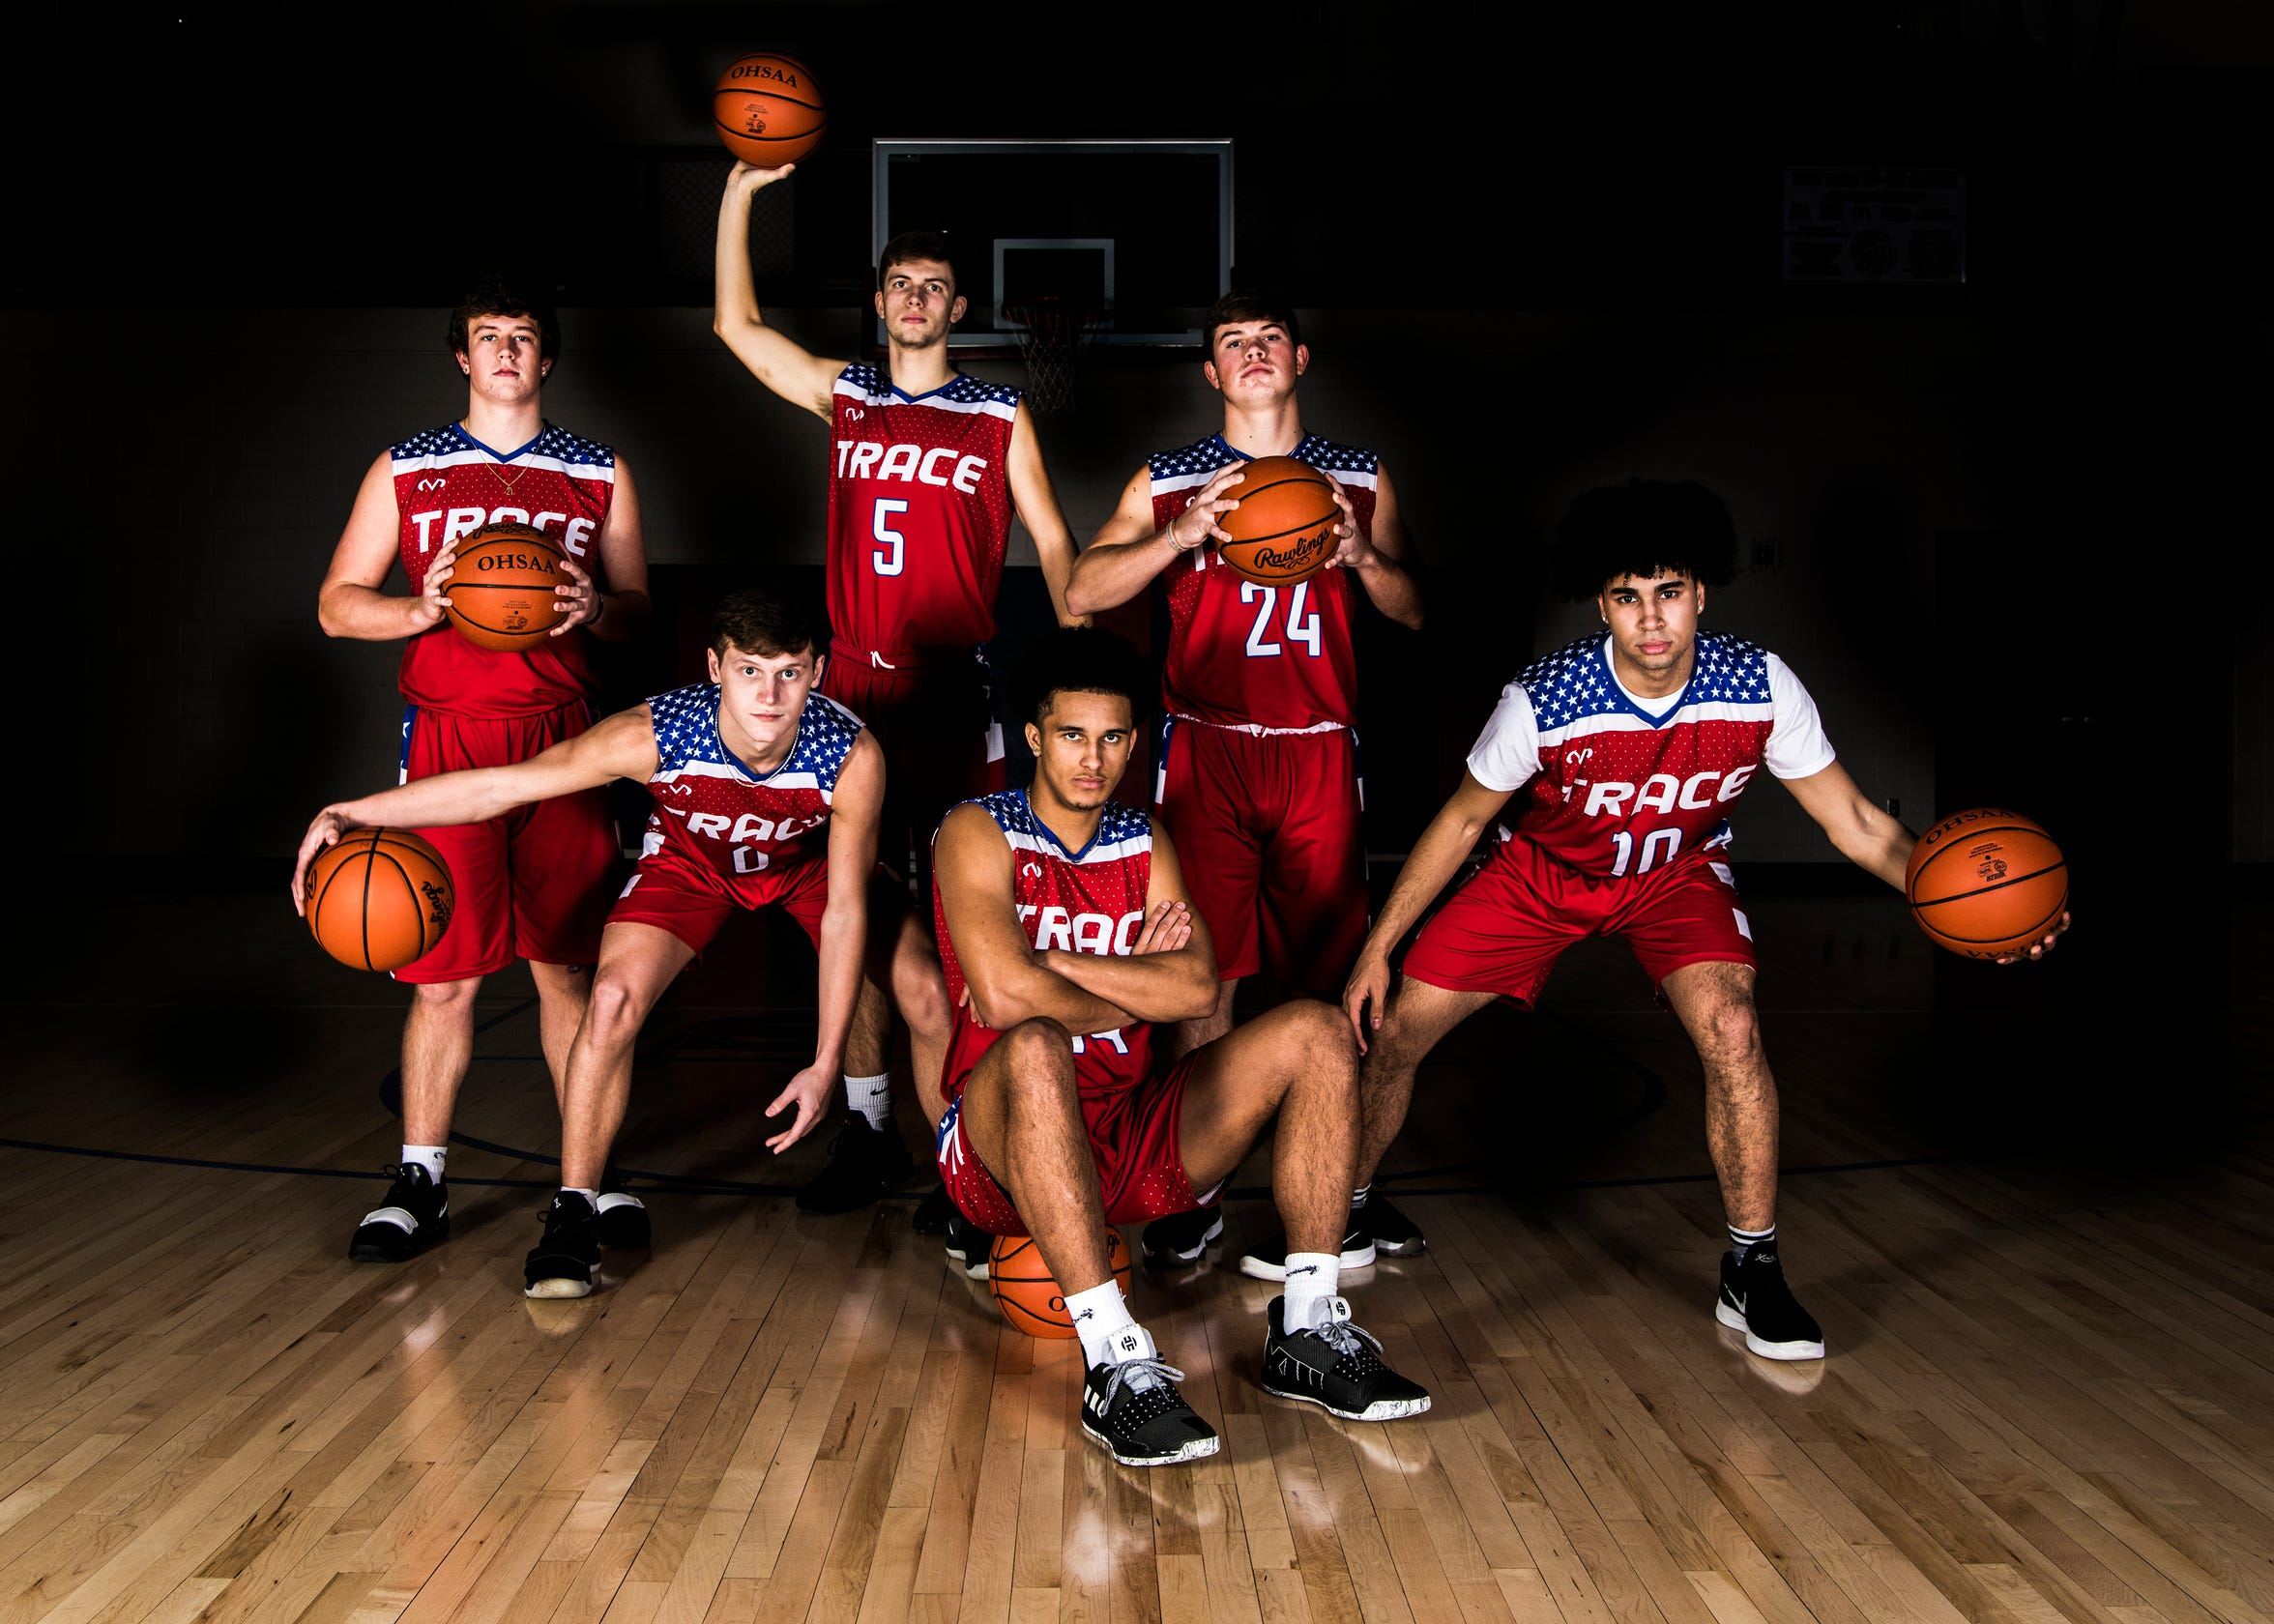 The Zane Trace varsity basketball team will return to Ohio University's Convocation Center for a Division II district final against Fairfield Union in Athens on March 10, 2019. Zane Trace basketball players (L-R) Luke Johnson, Colby Swain, Nick Nesser, Triton Davidson, Chad Ison, and Cam Evans.